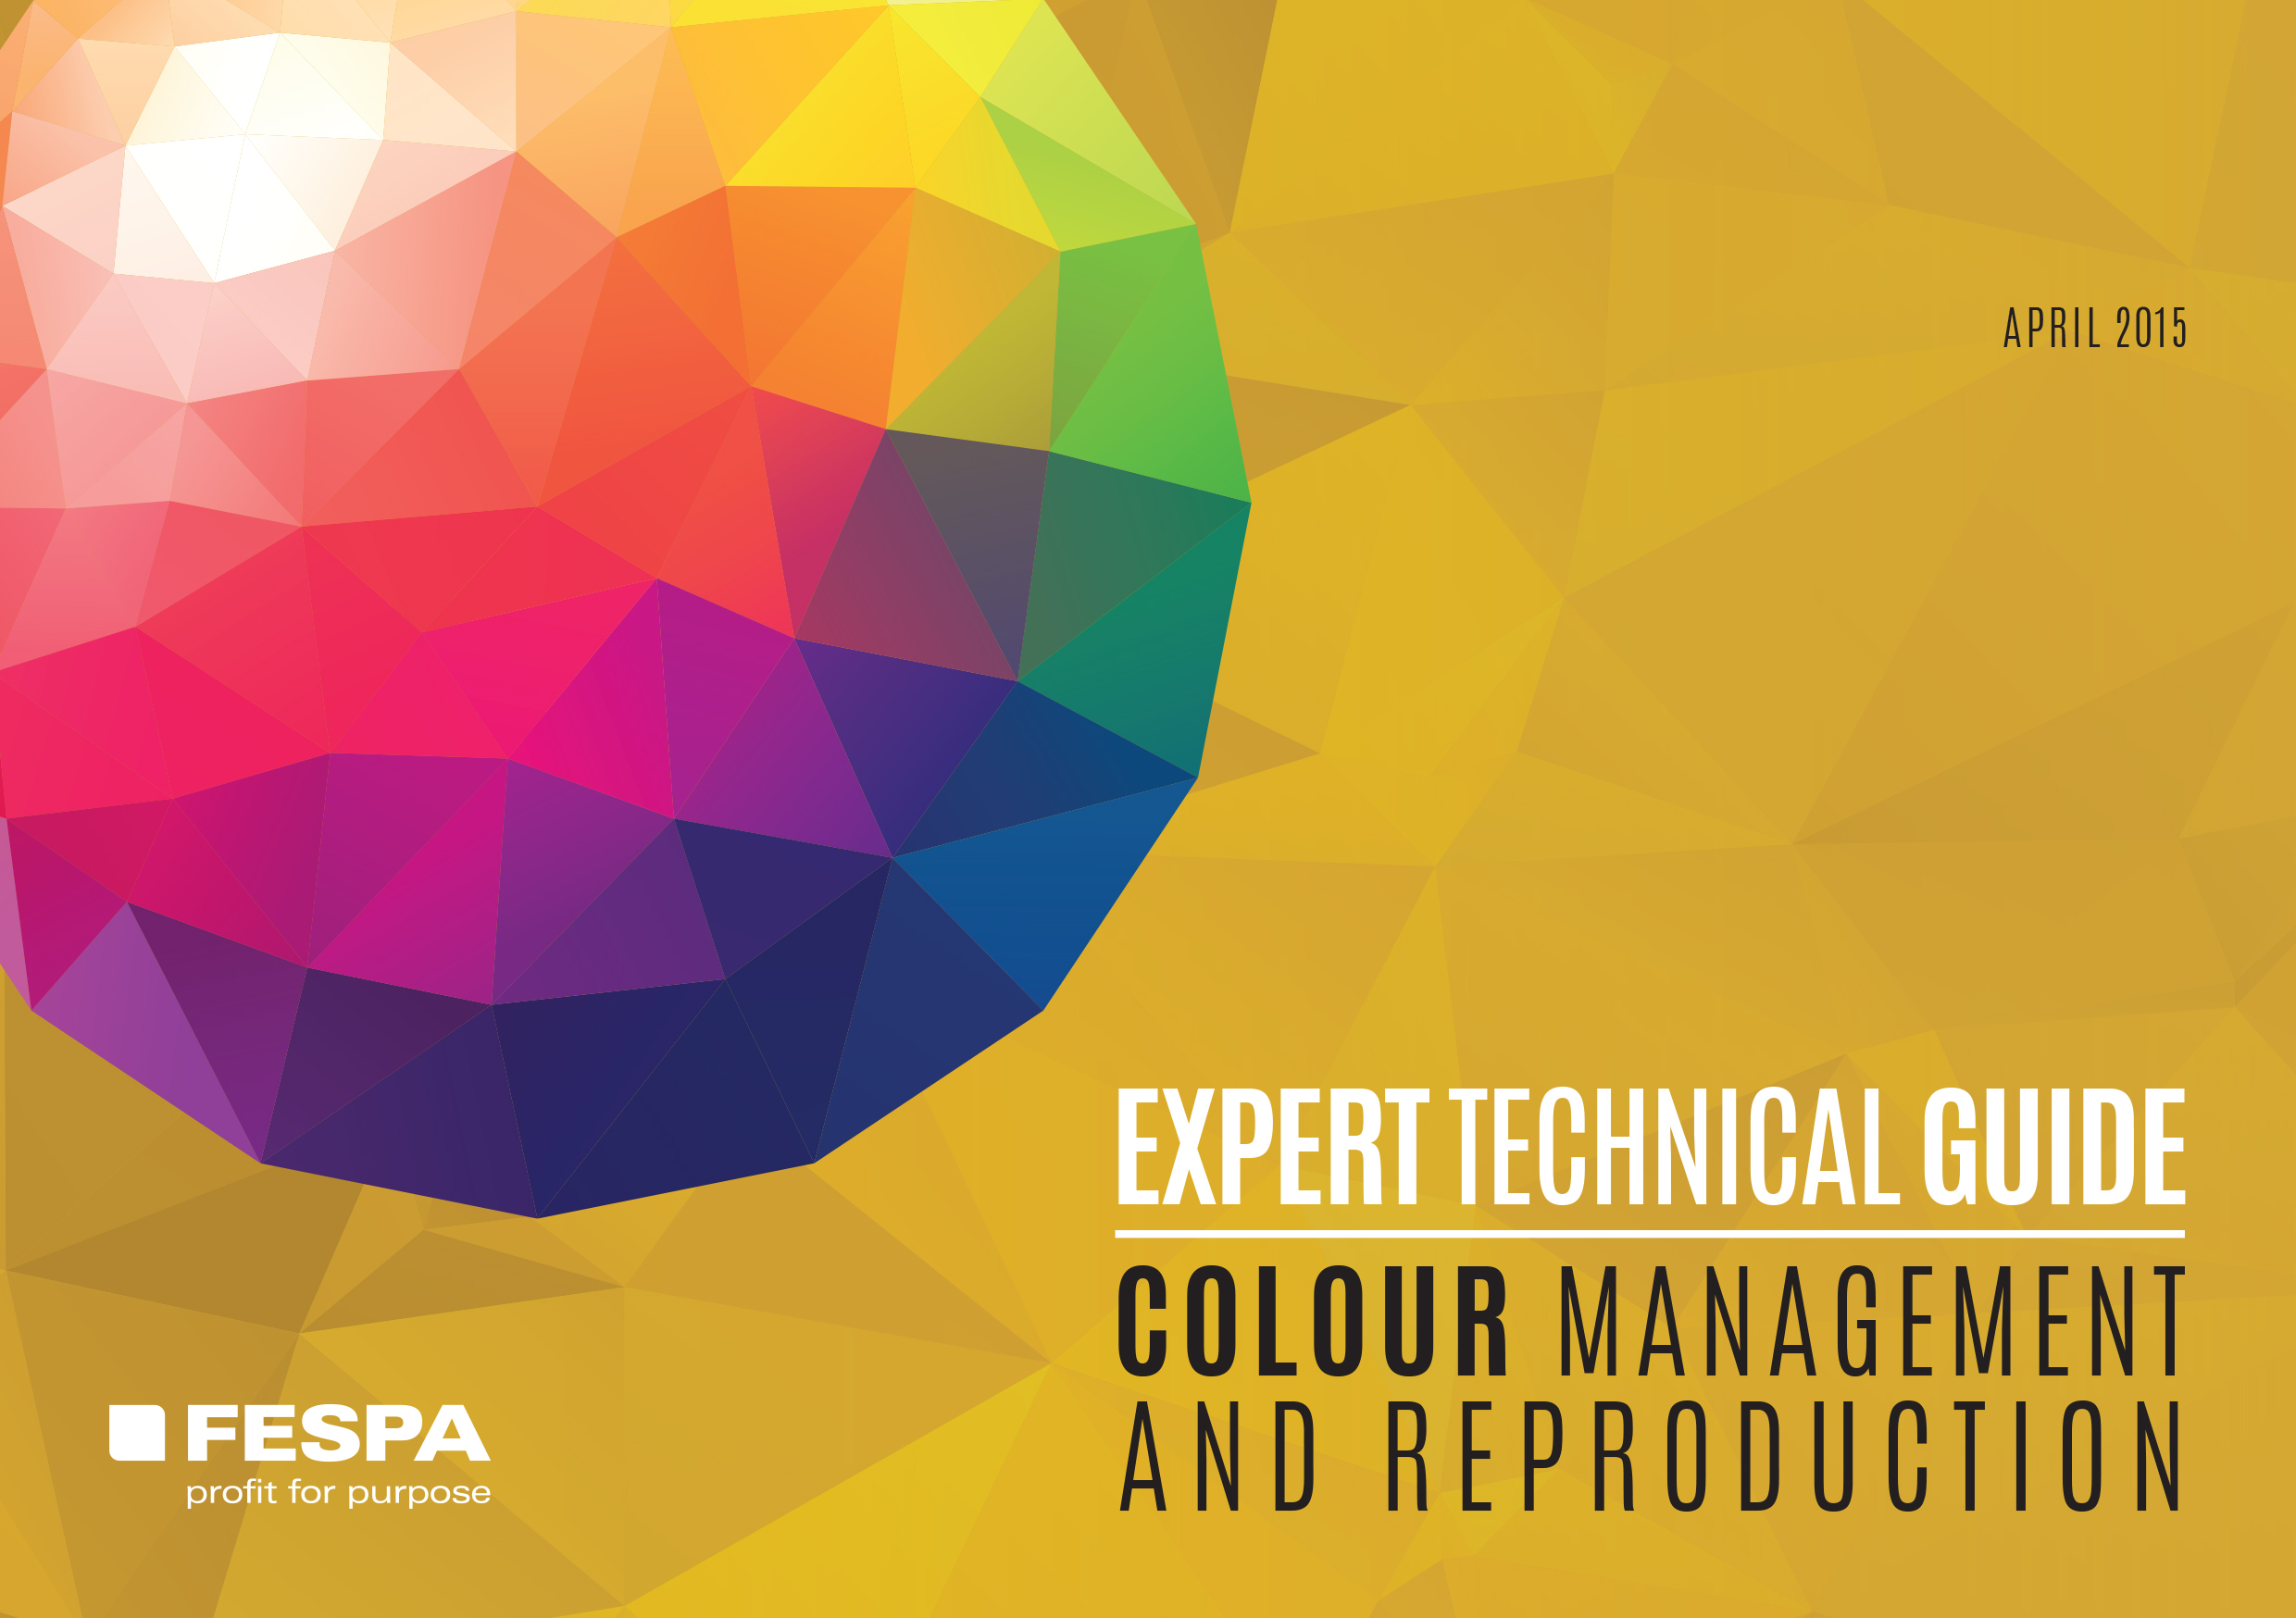 FESPA_Colour_Management_and_Reproduction_COVER.jpg